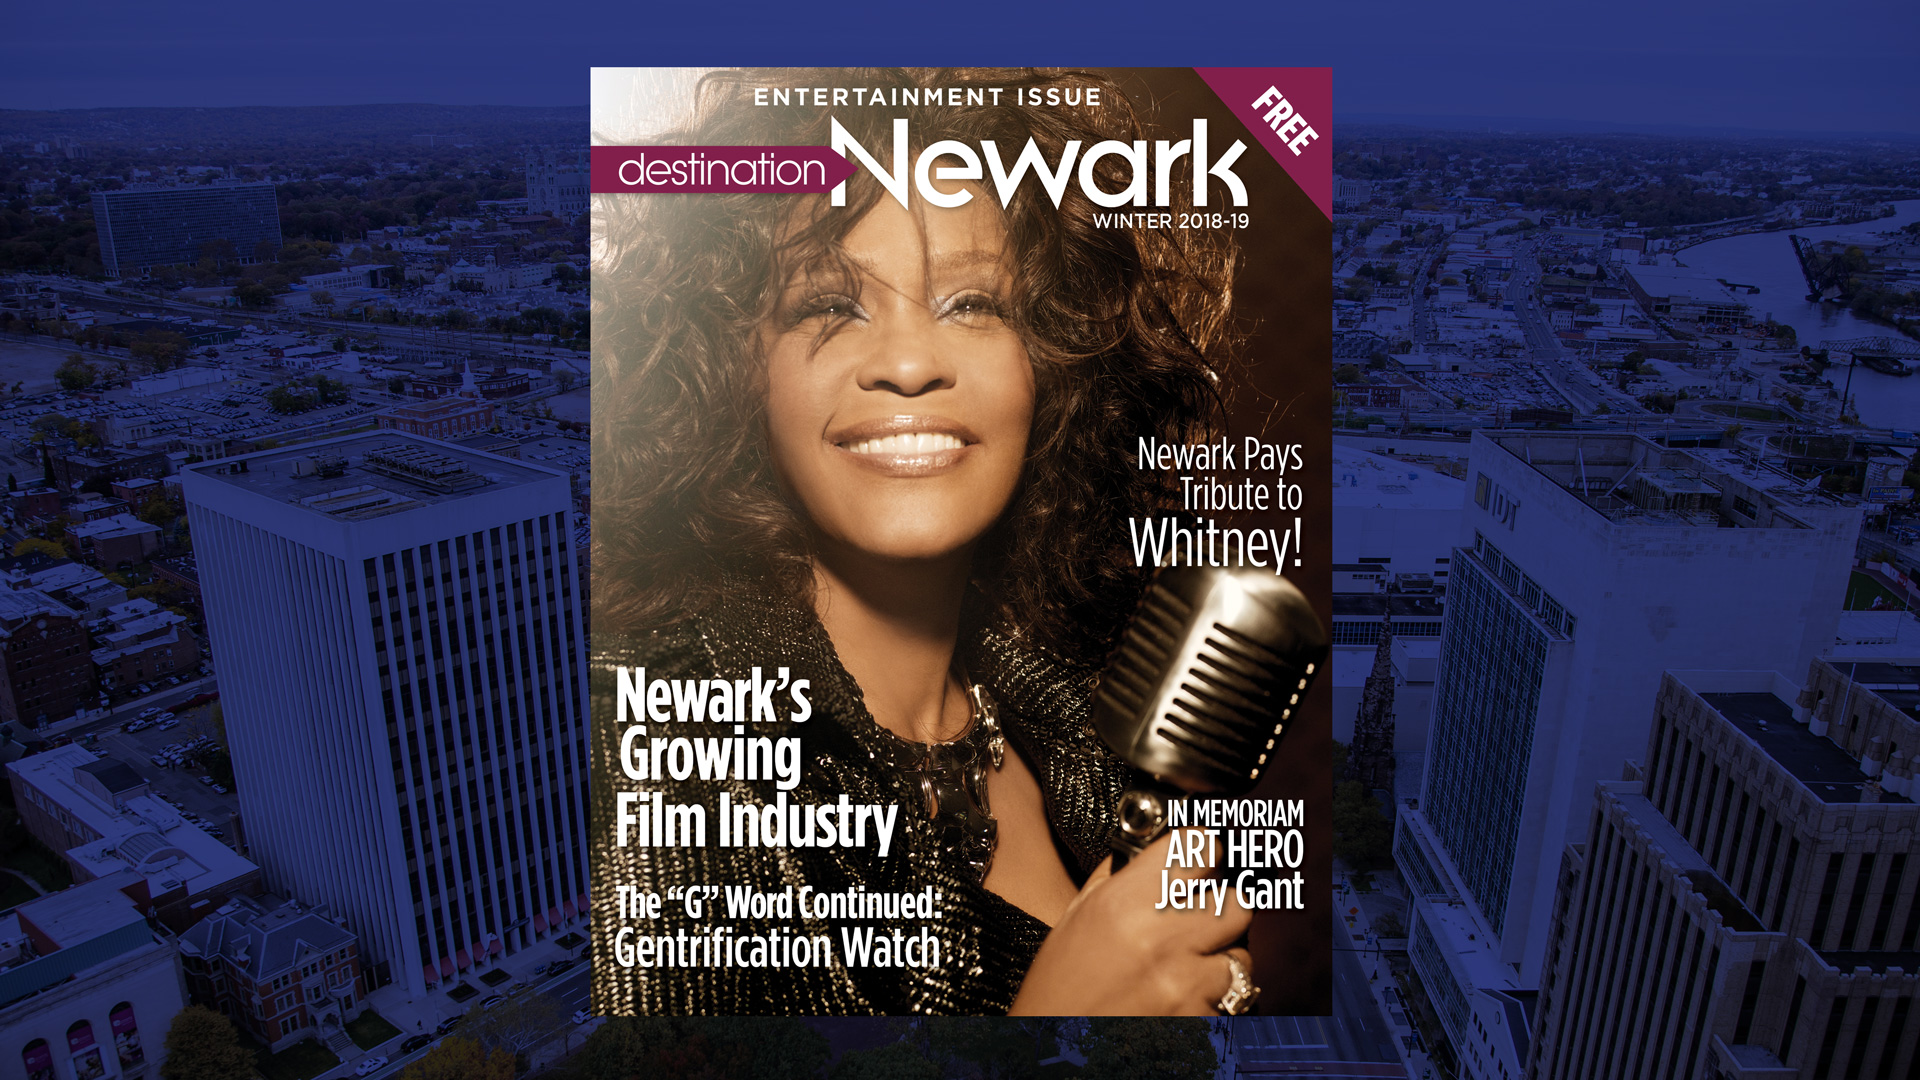 Destination Newark Cover Spring 2017